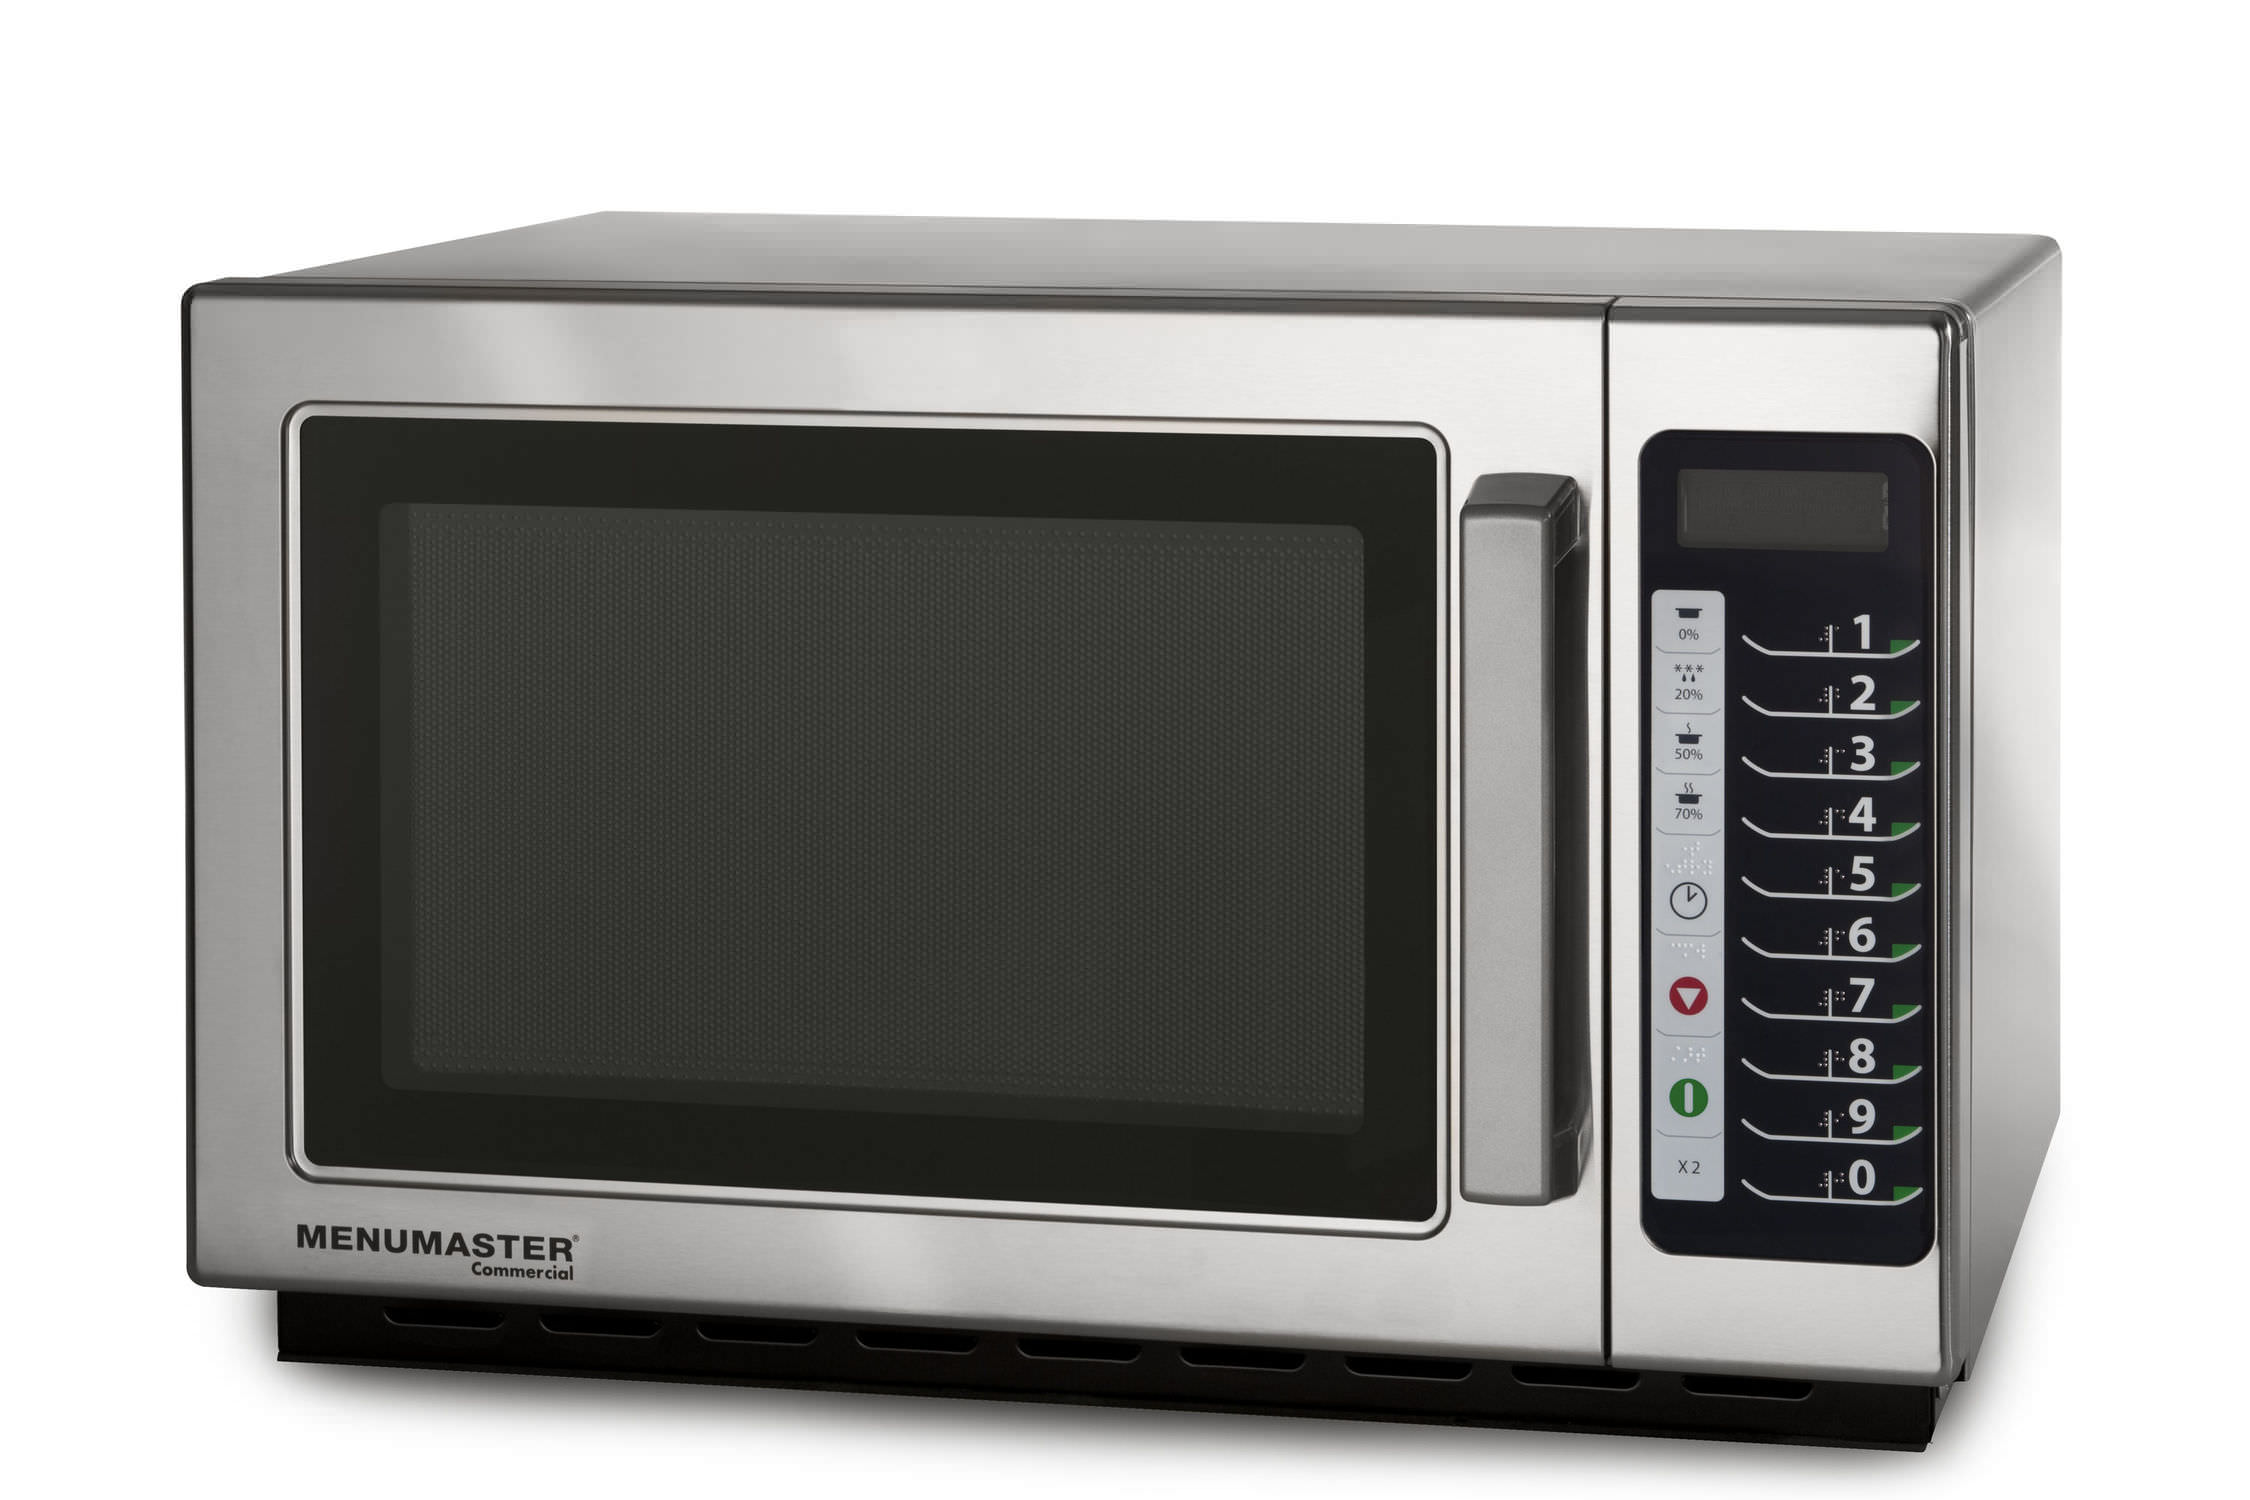 http://img.archiexpo.com/images_ae/photo-g/electrical-oven-microwave-commercial-67247-6100117.jpg